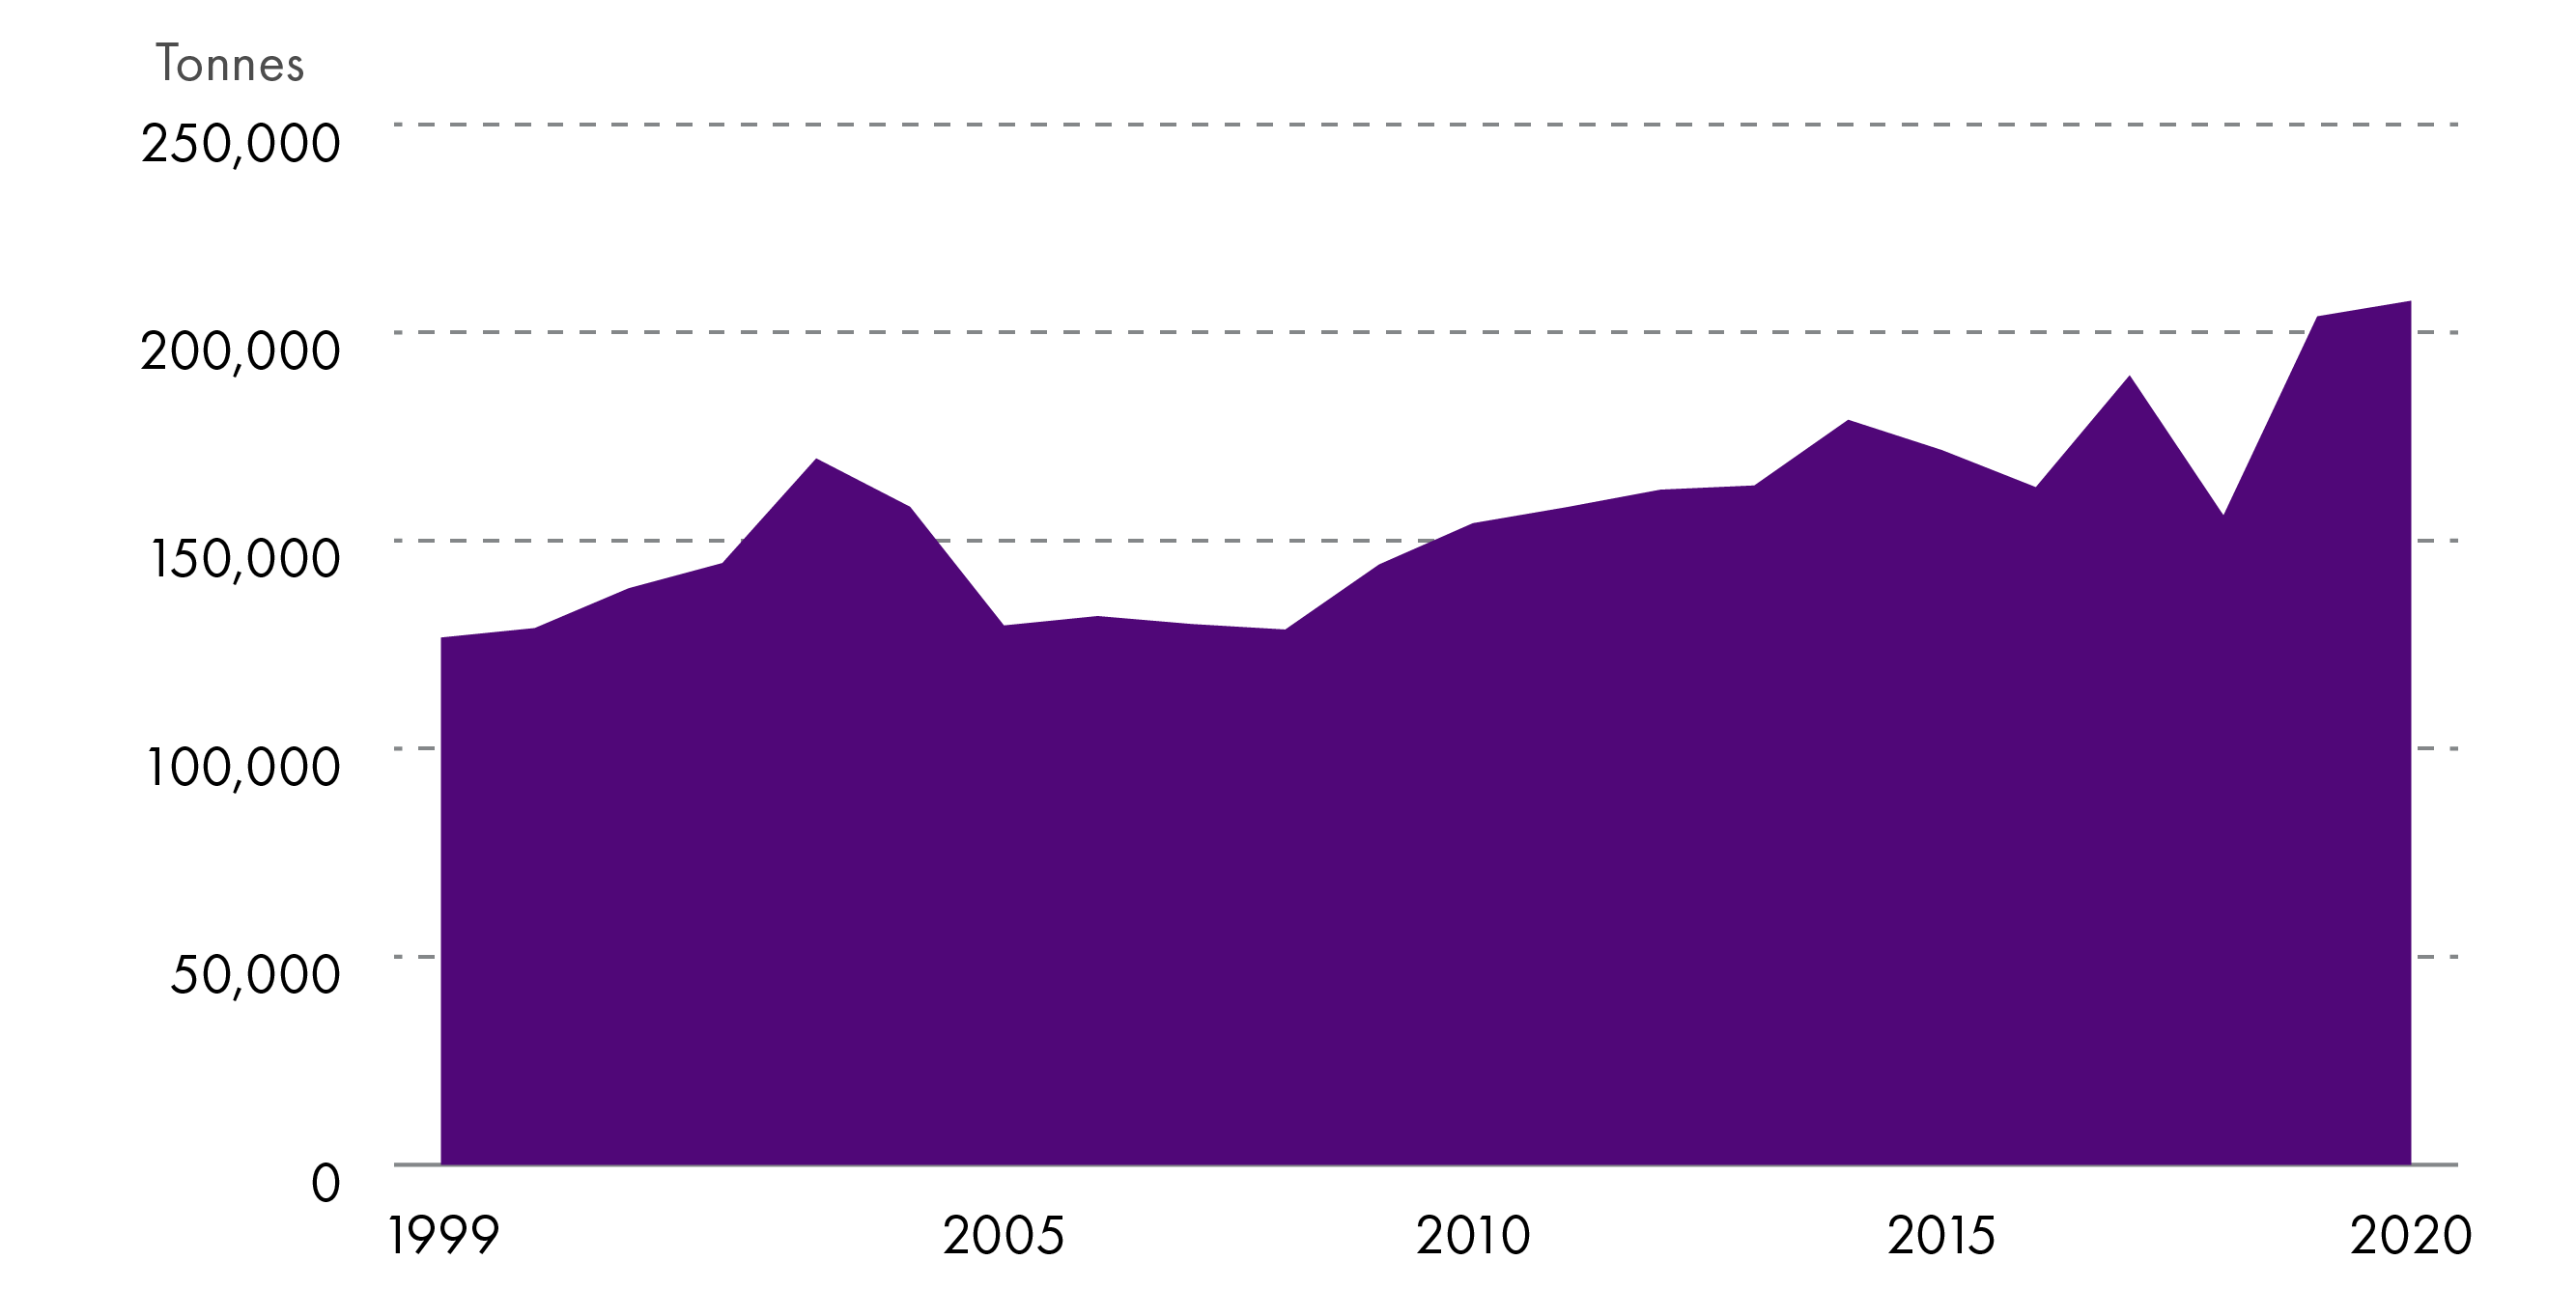 Graph showing the number of tonnes of salmon produced per year in Scotland between 1999-2020. Whilst production has fluctuated somewhat, the industry has grown substantially in this period, from 126,686 in 1999 to an estimated 207,630 in 2020.